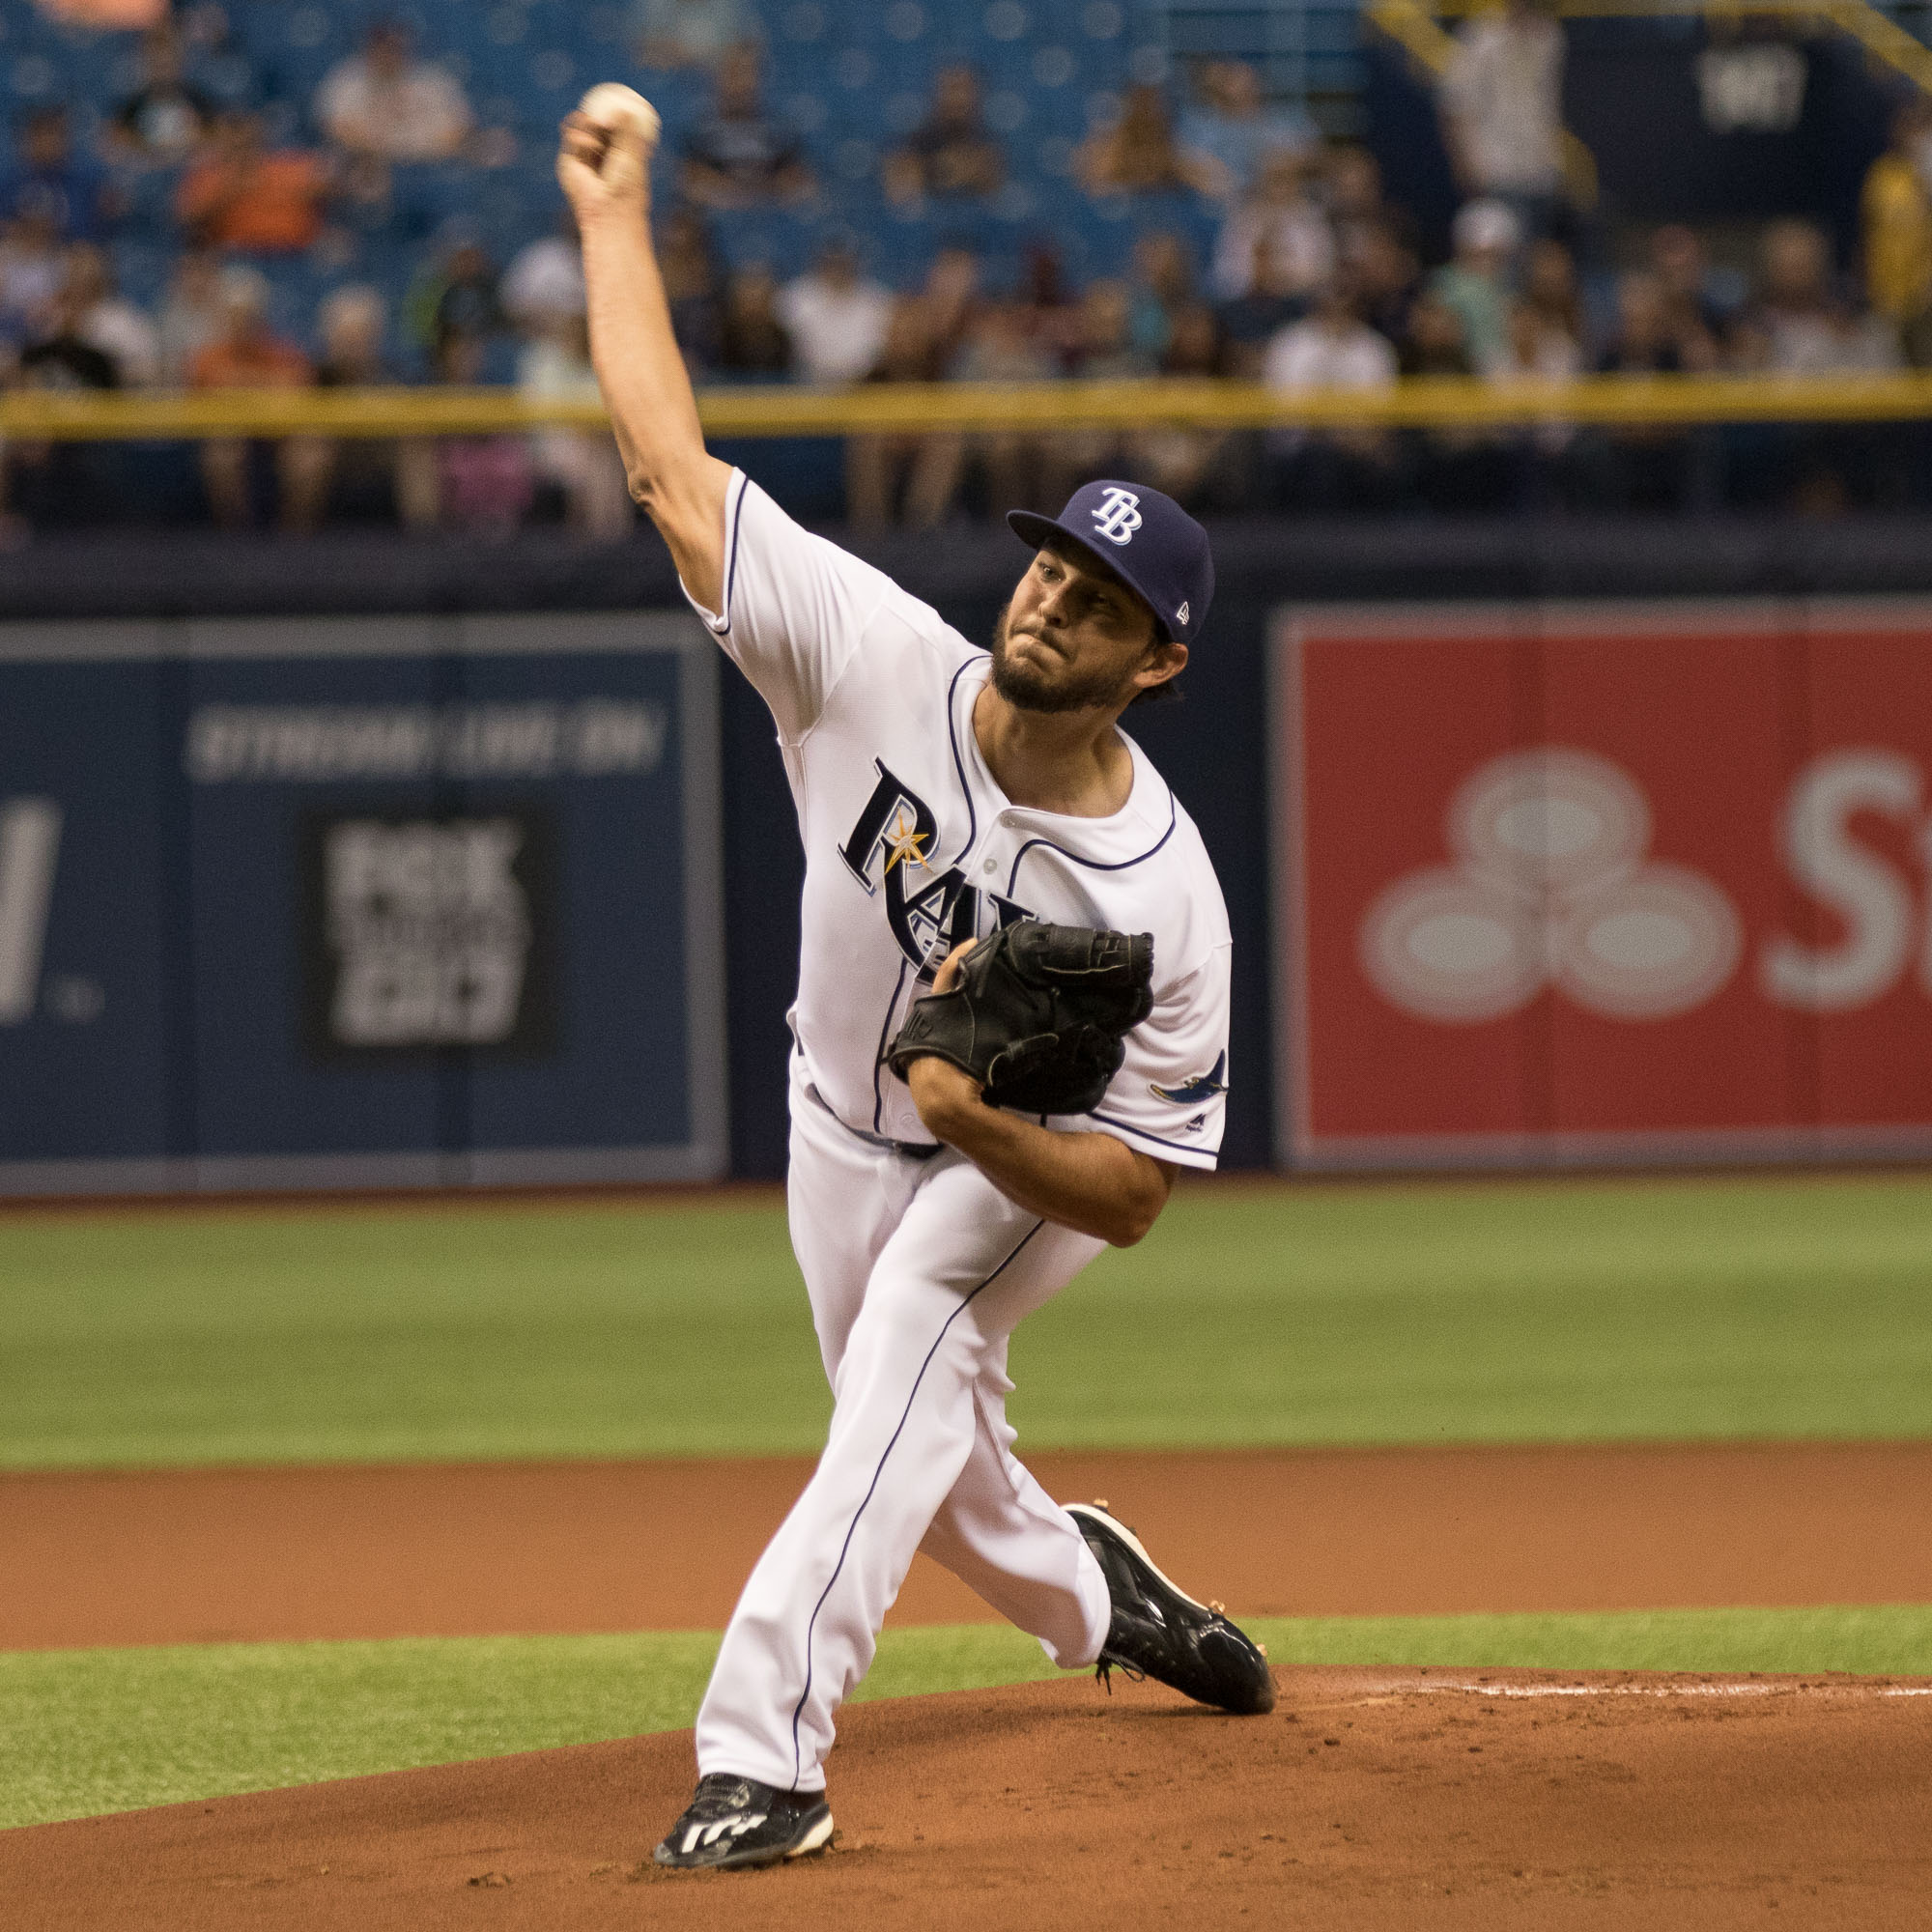 Pitcher Jacob Faria was just what the Rays needed./STEVEN MUNCIE